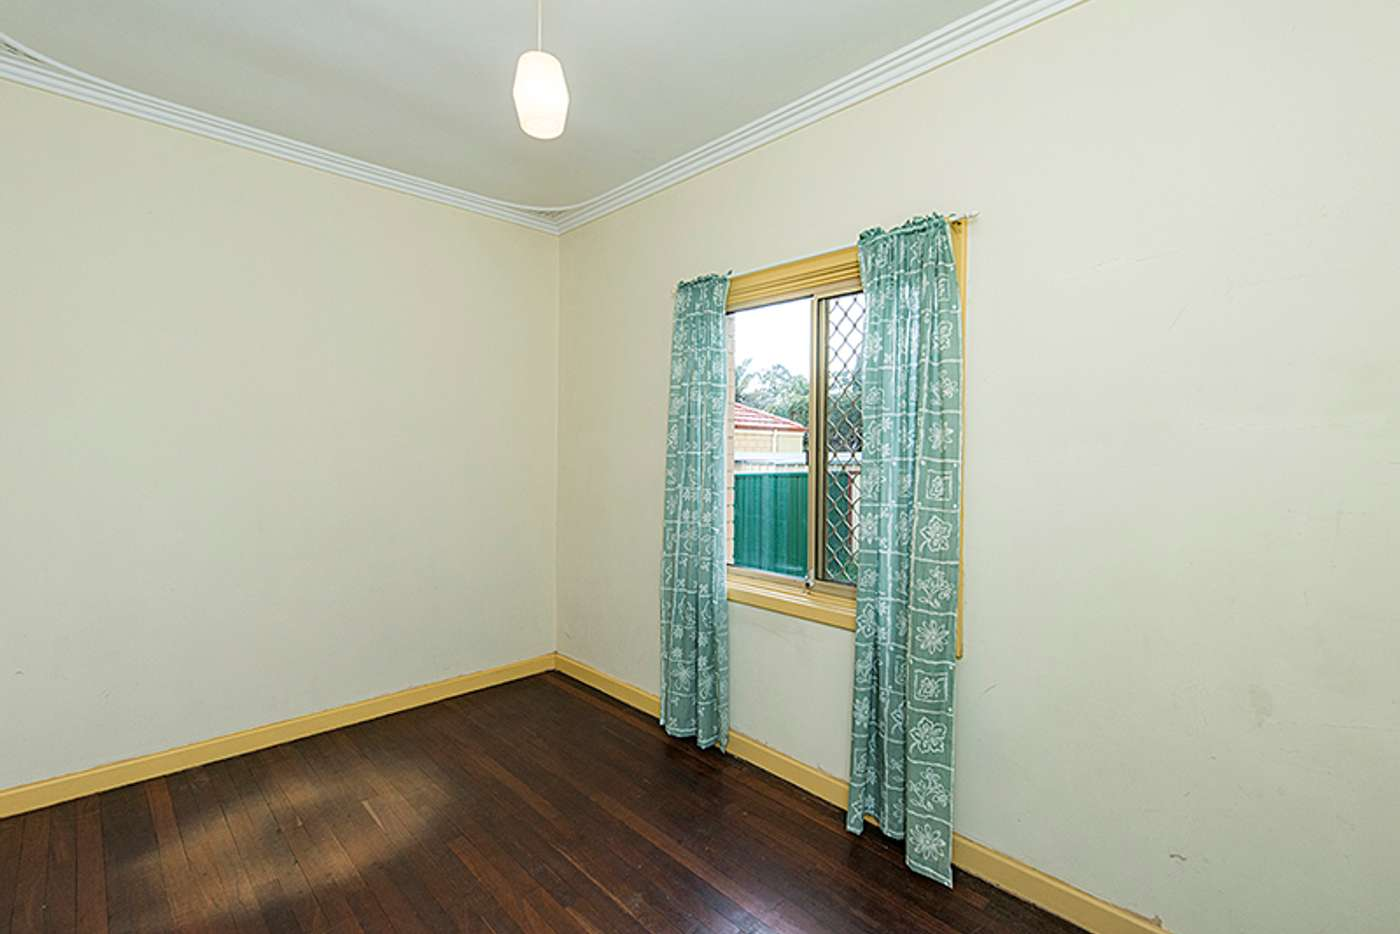 Sixth view of Homely house listing, 249 Acton Avenue, Kewdale WA 6105